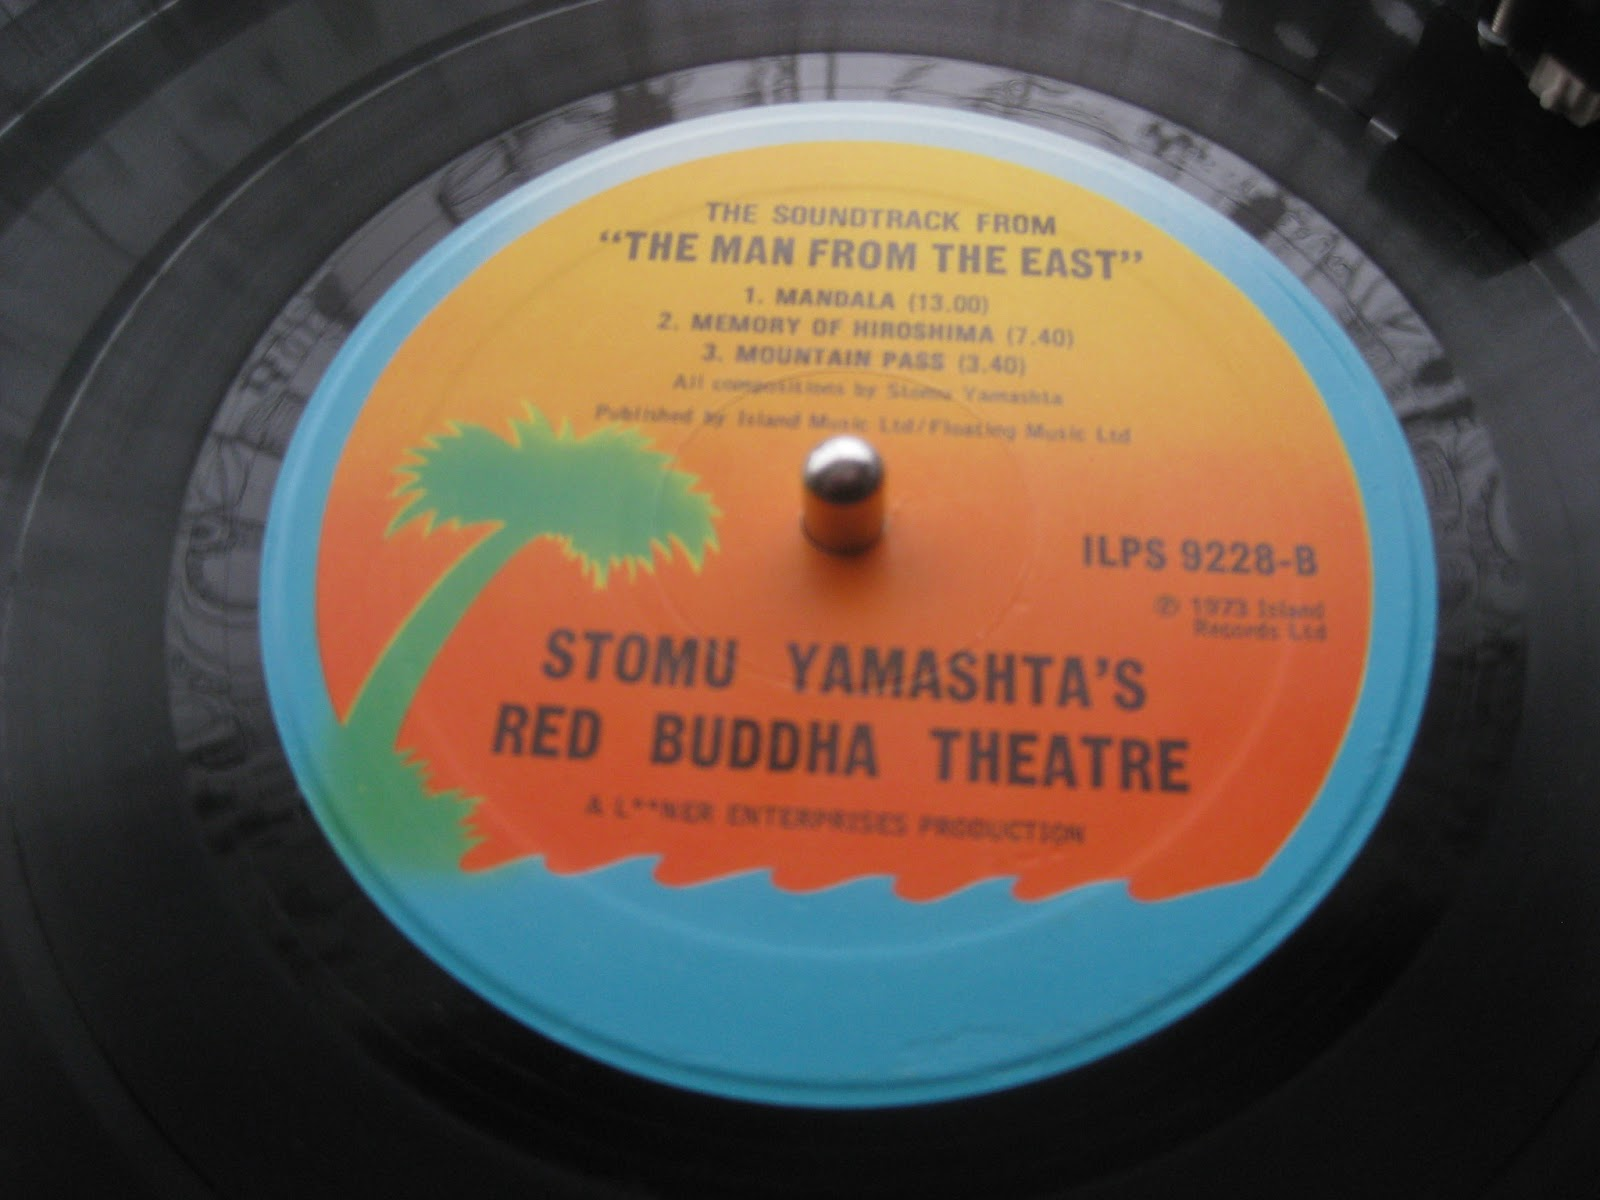 Stomu Yamashtas Red Buddha Theatre The Soundtrack From The Man From The East